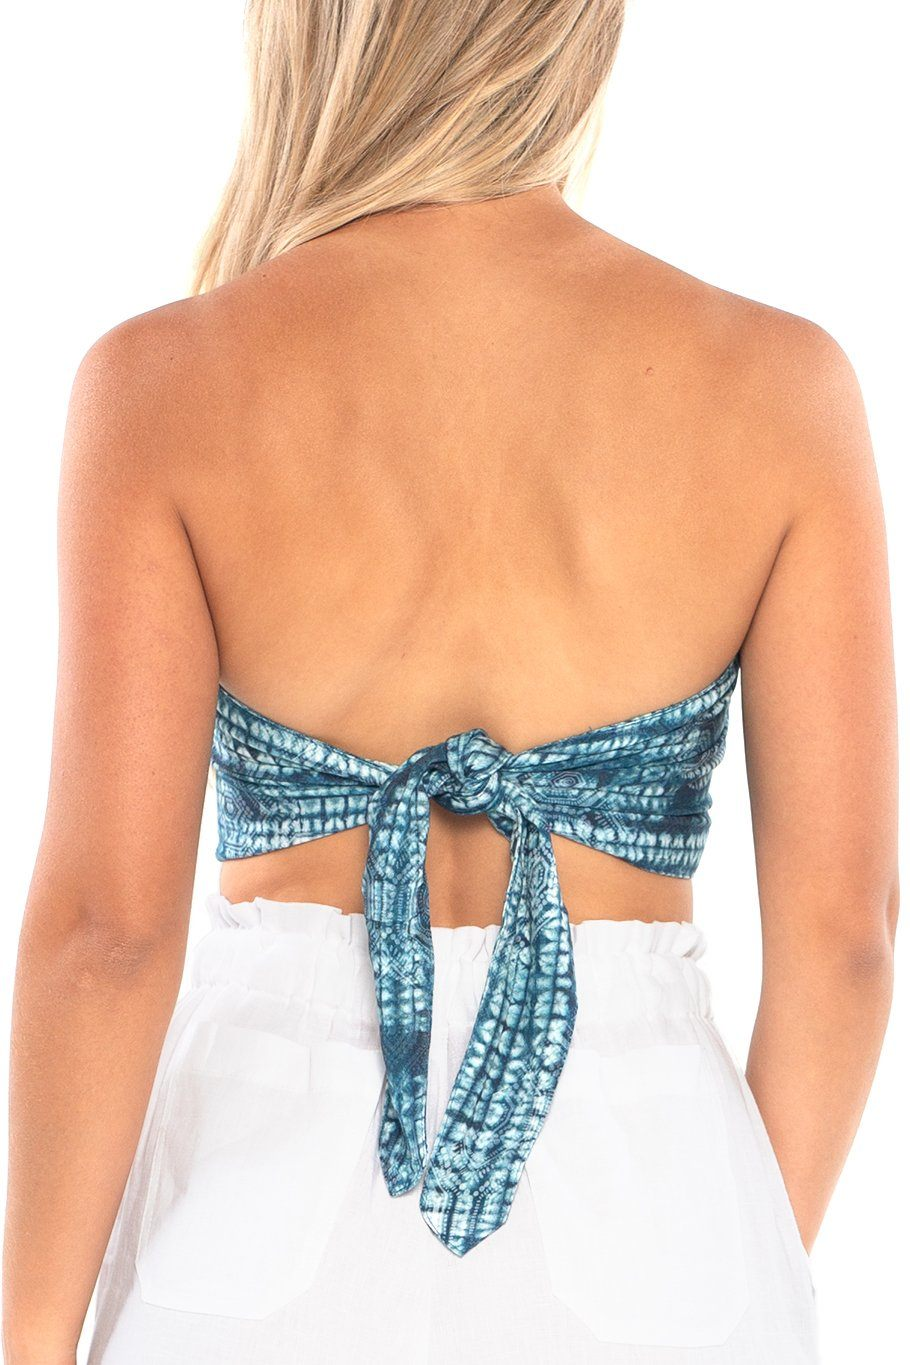 Handkerchief Top - Blue Aztec